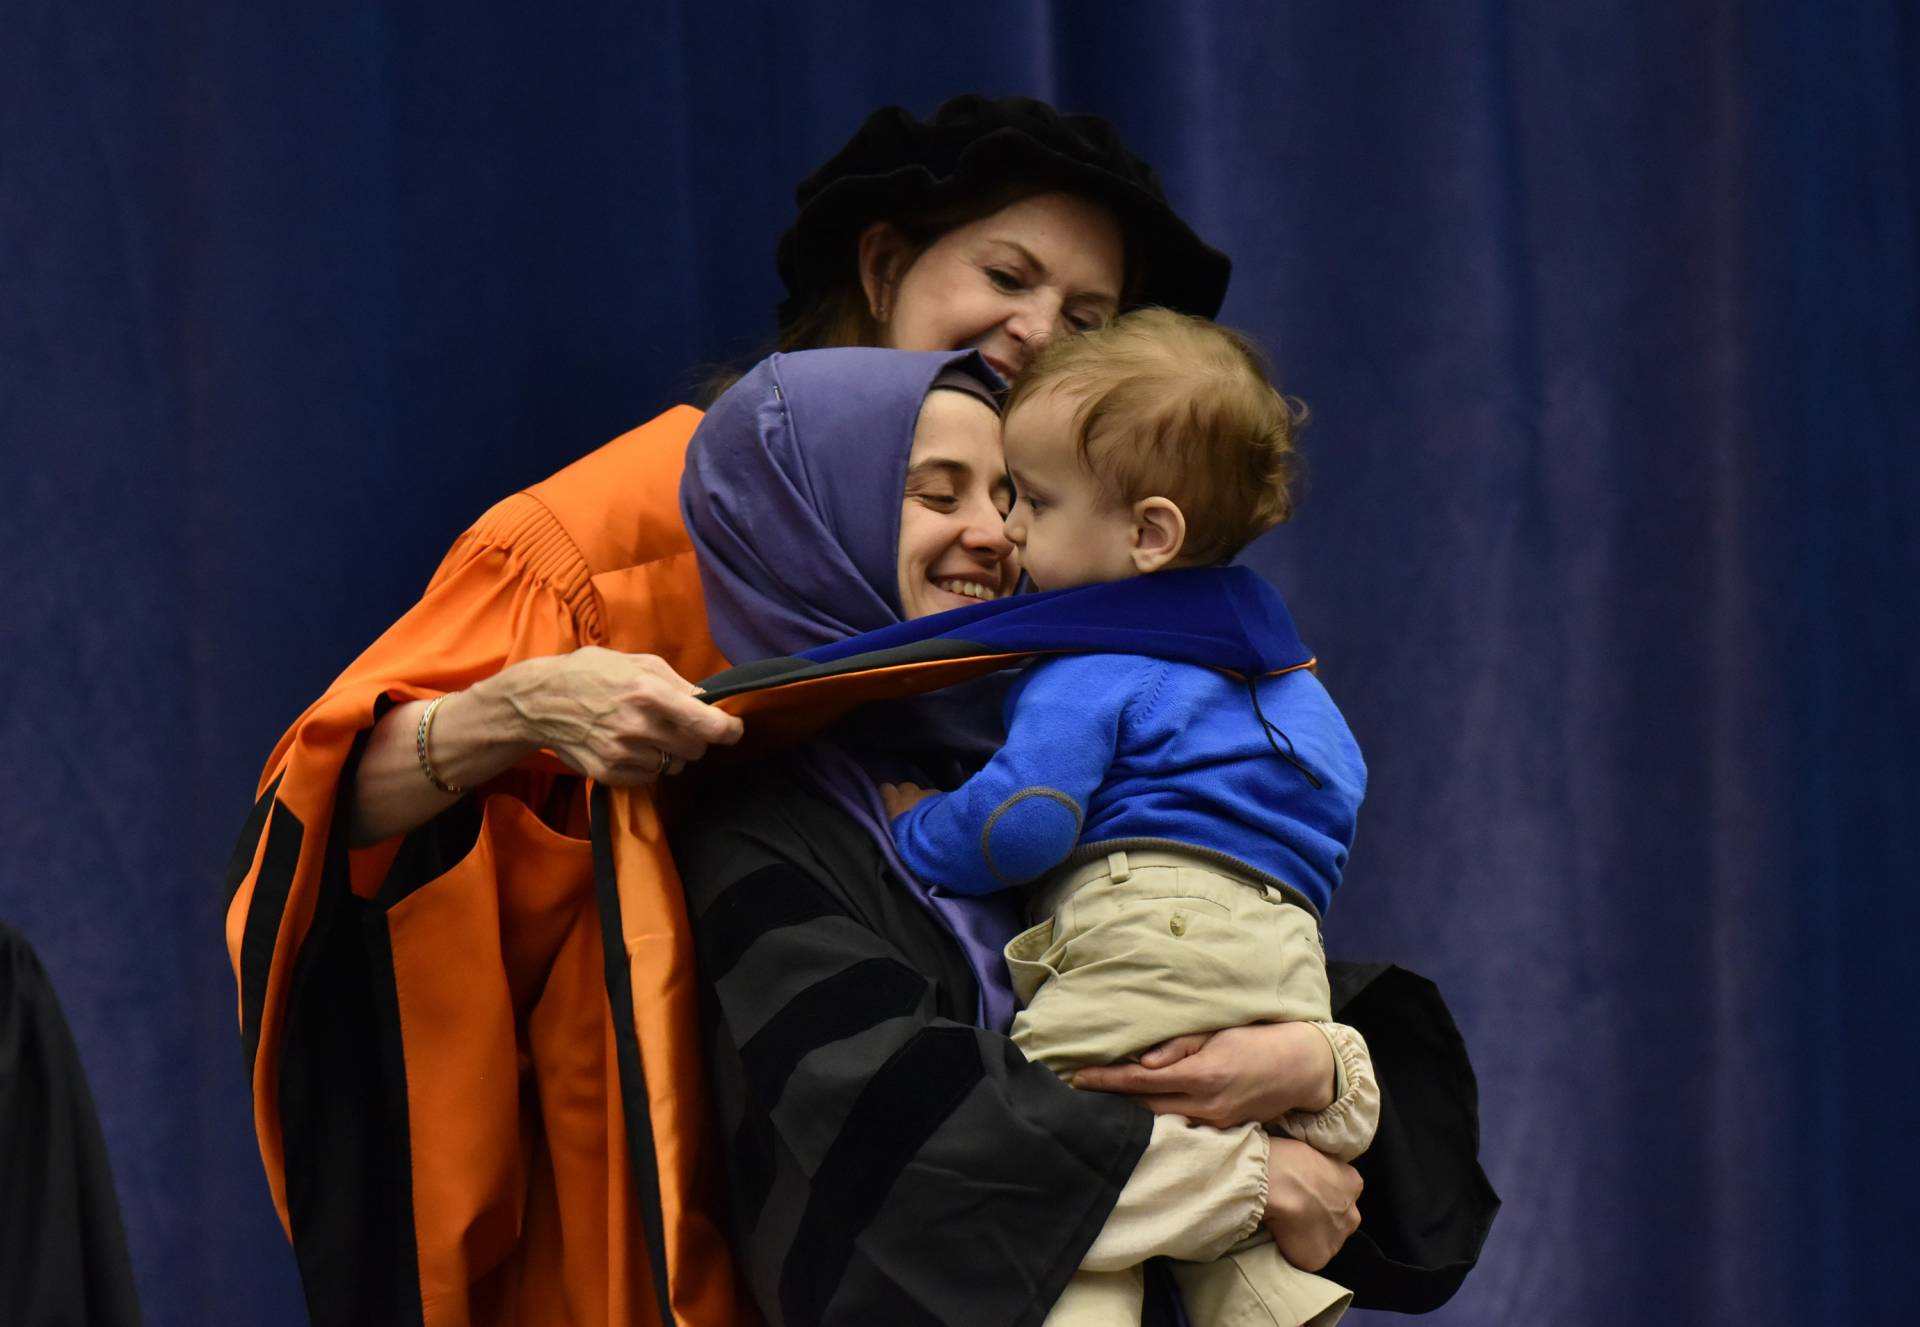 Student is hooded with child in arms